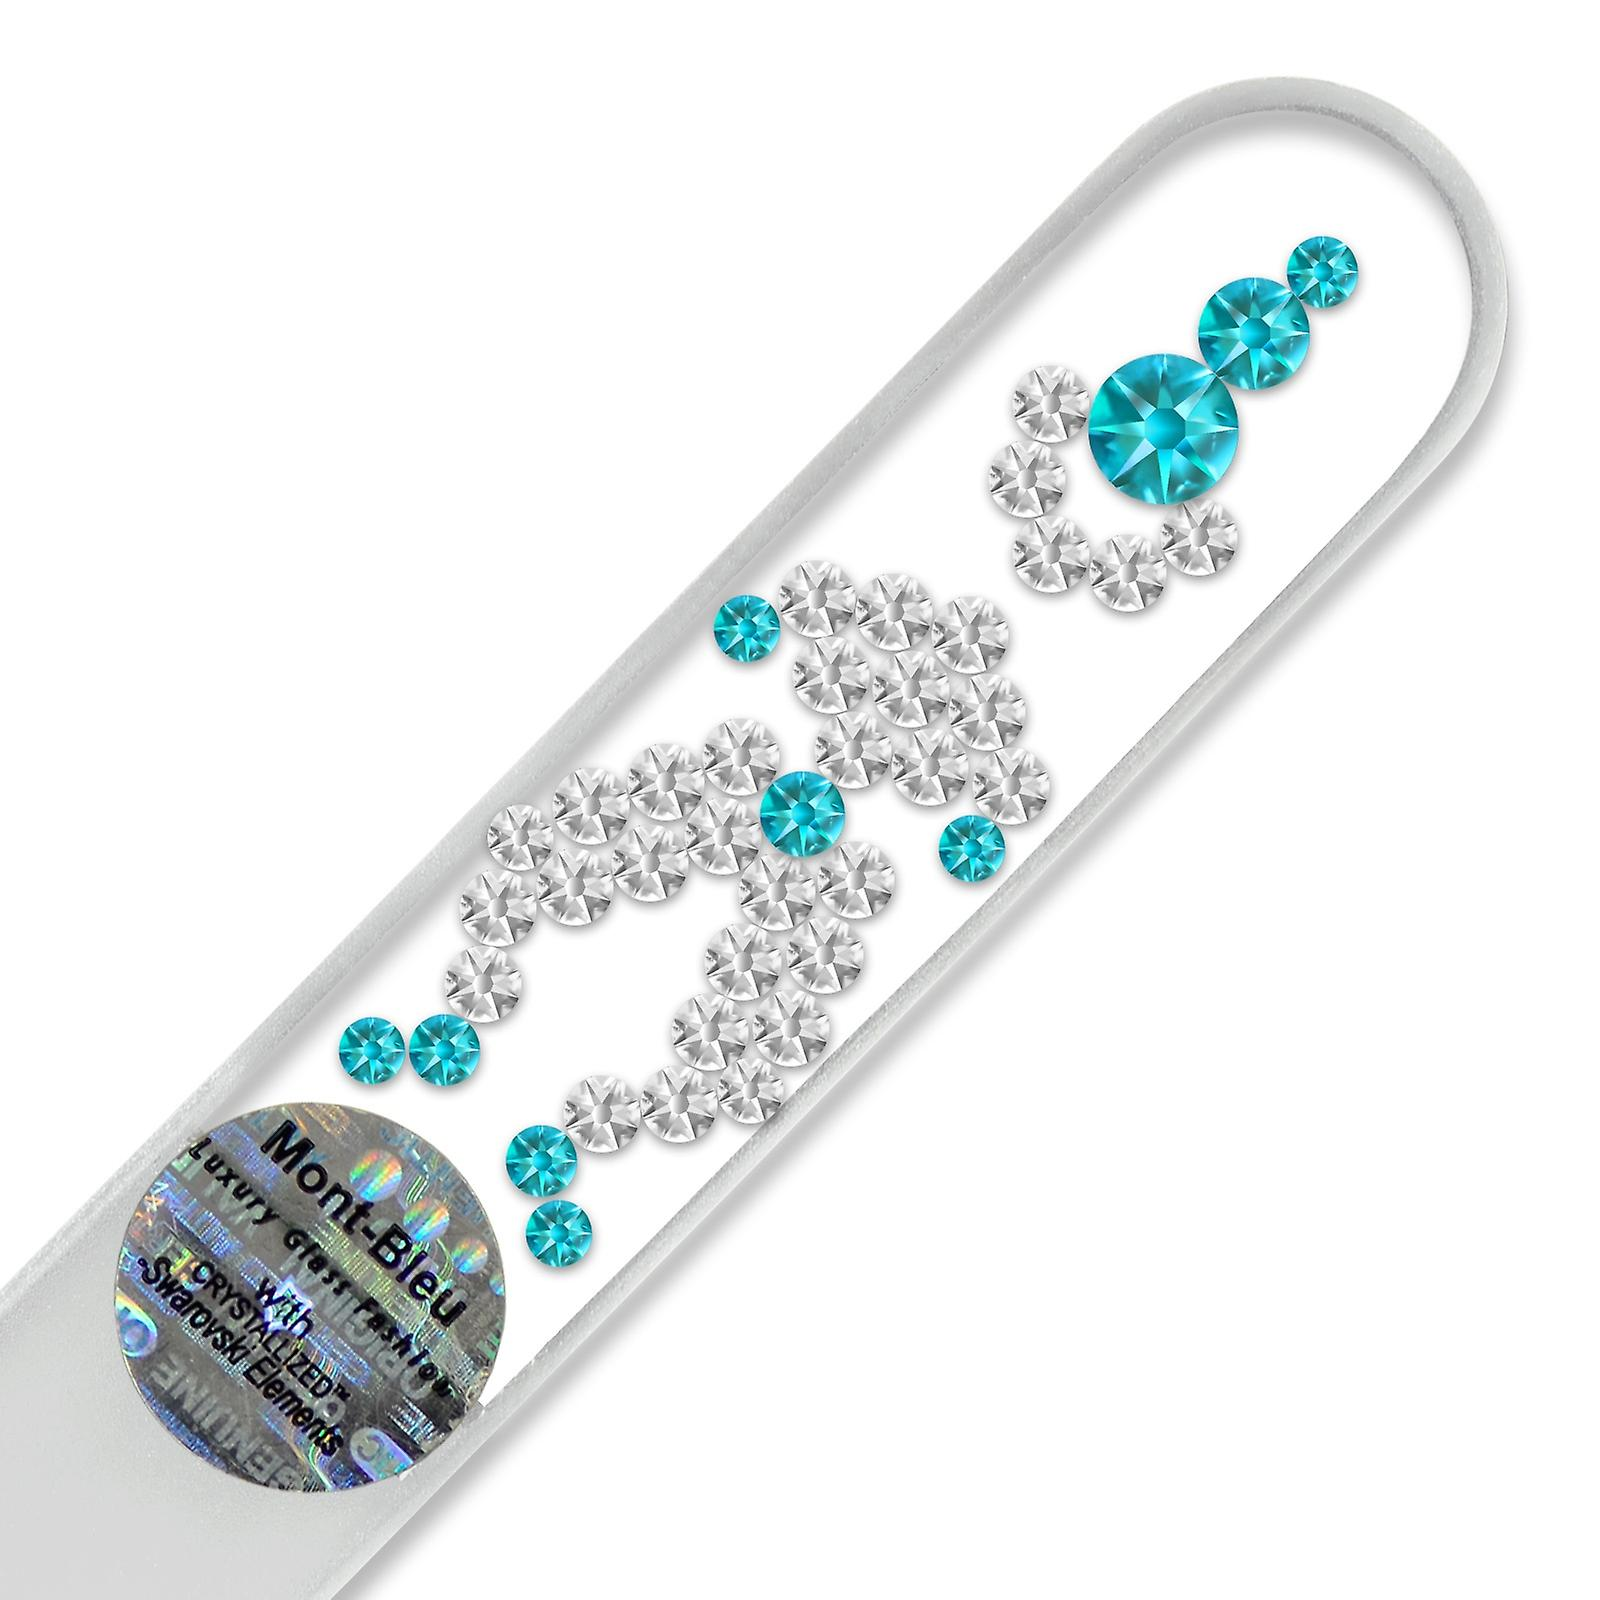 Mont Bleu Clown Crystal Nail File LE-1